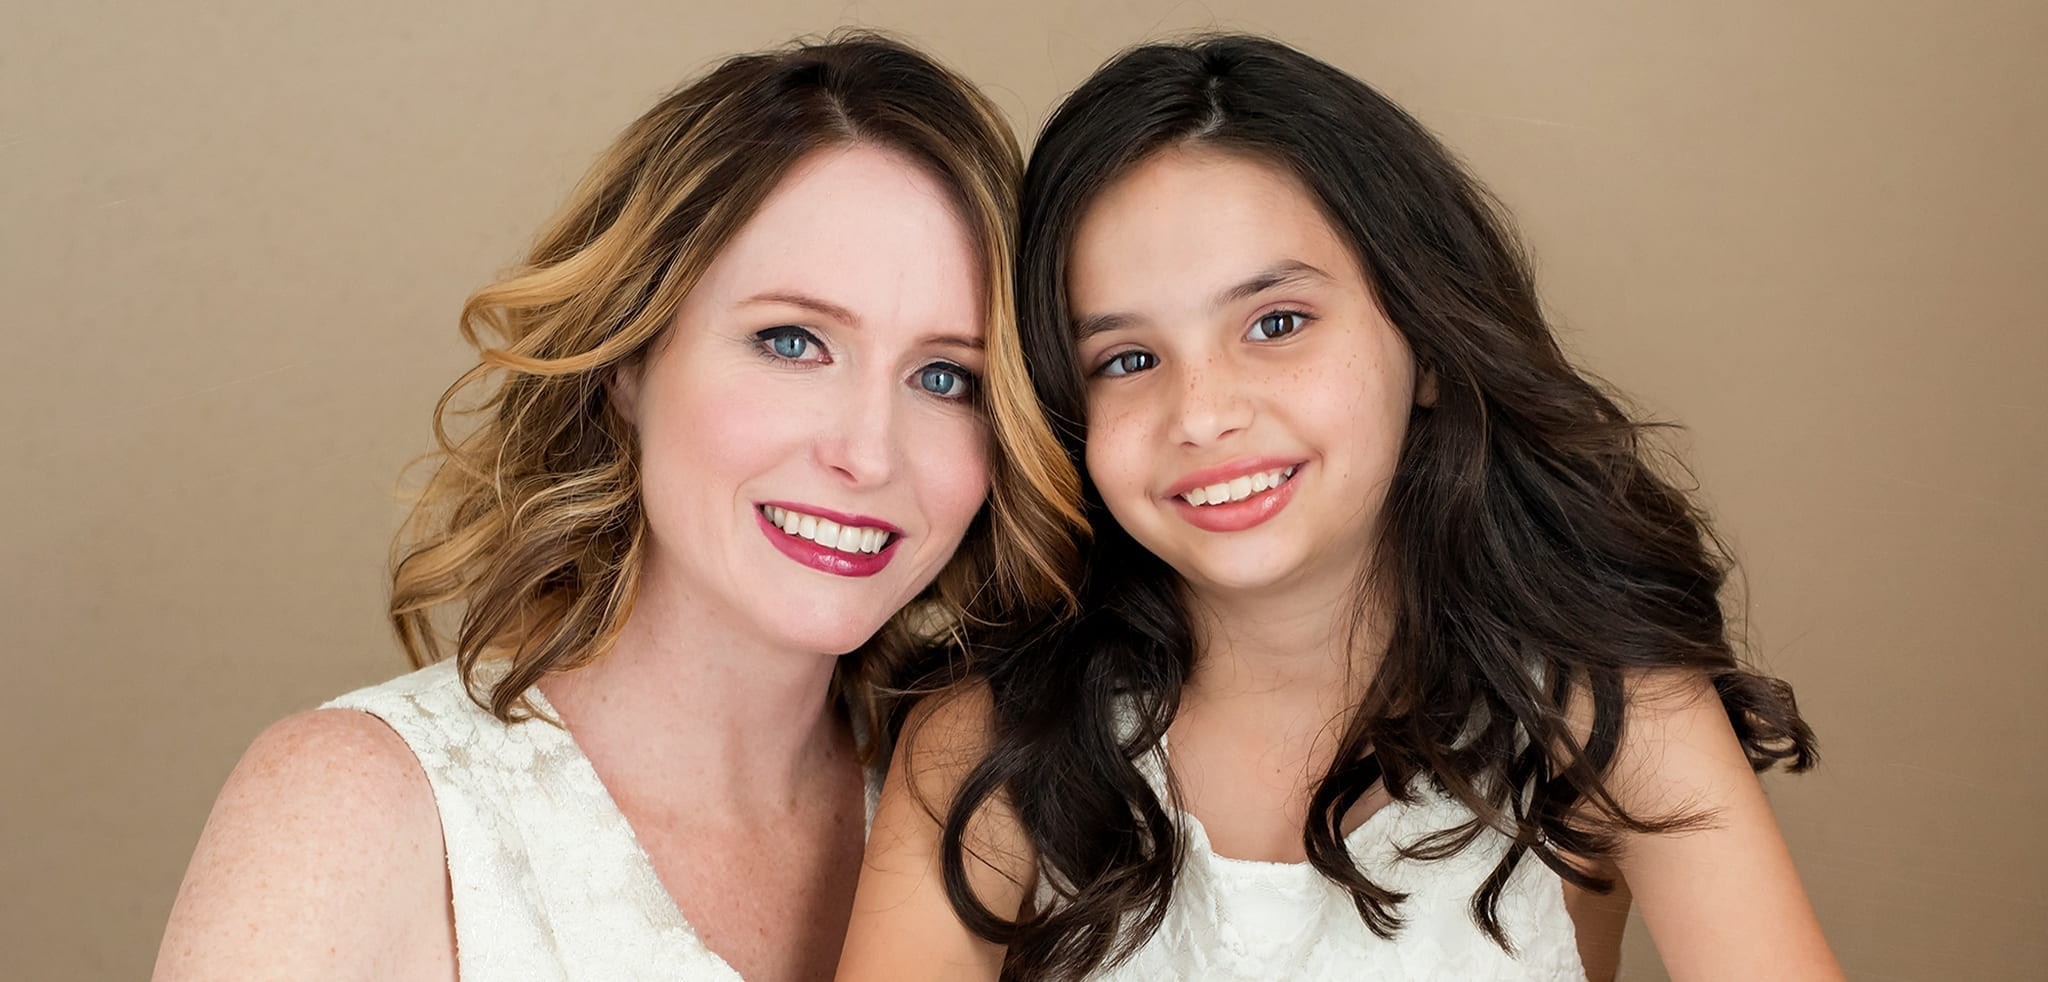 Woman and daughter smiling for their mommy and me shoot.